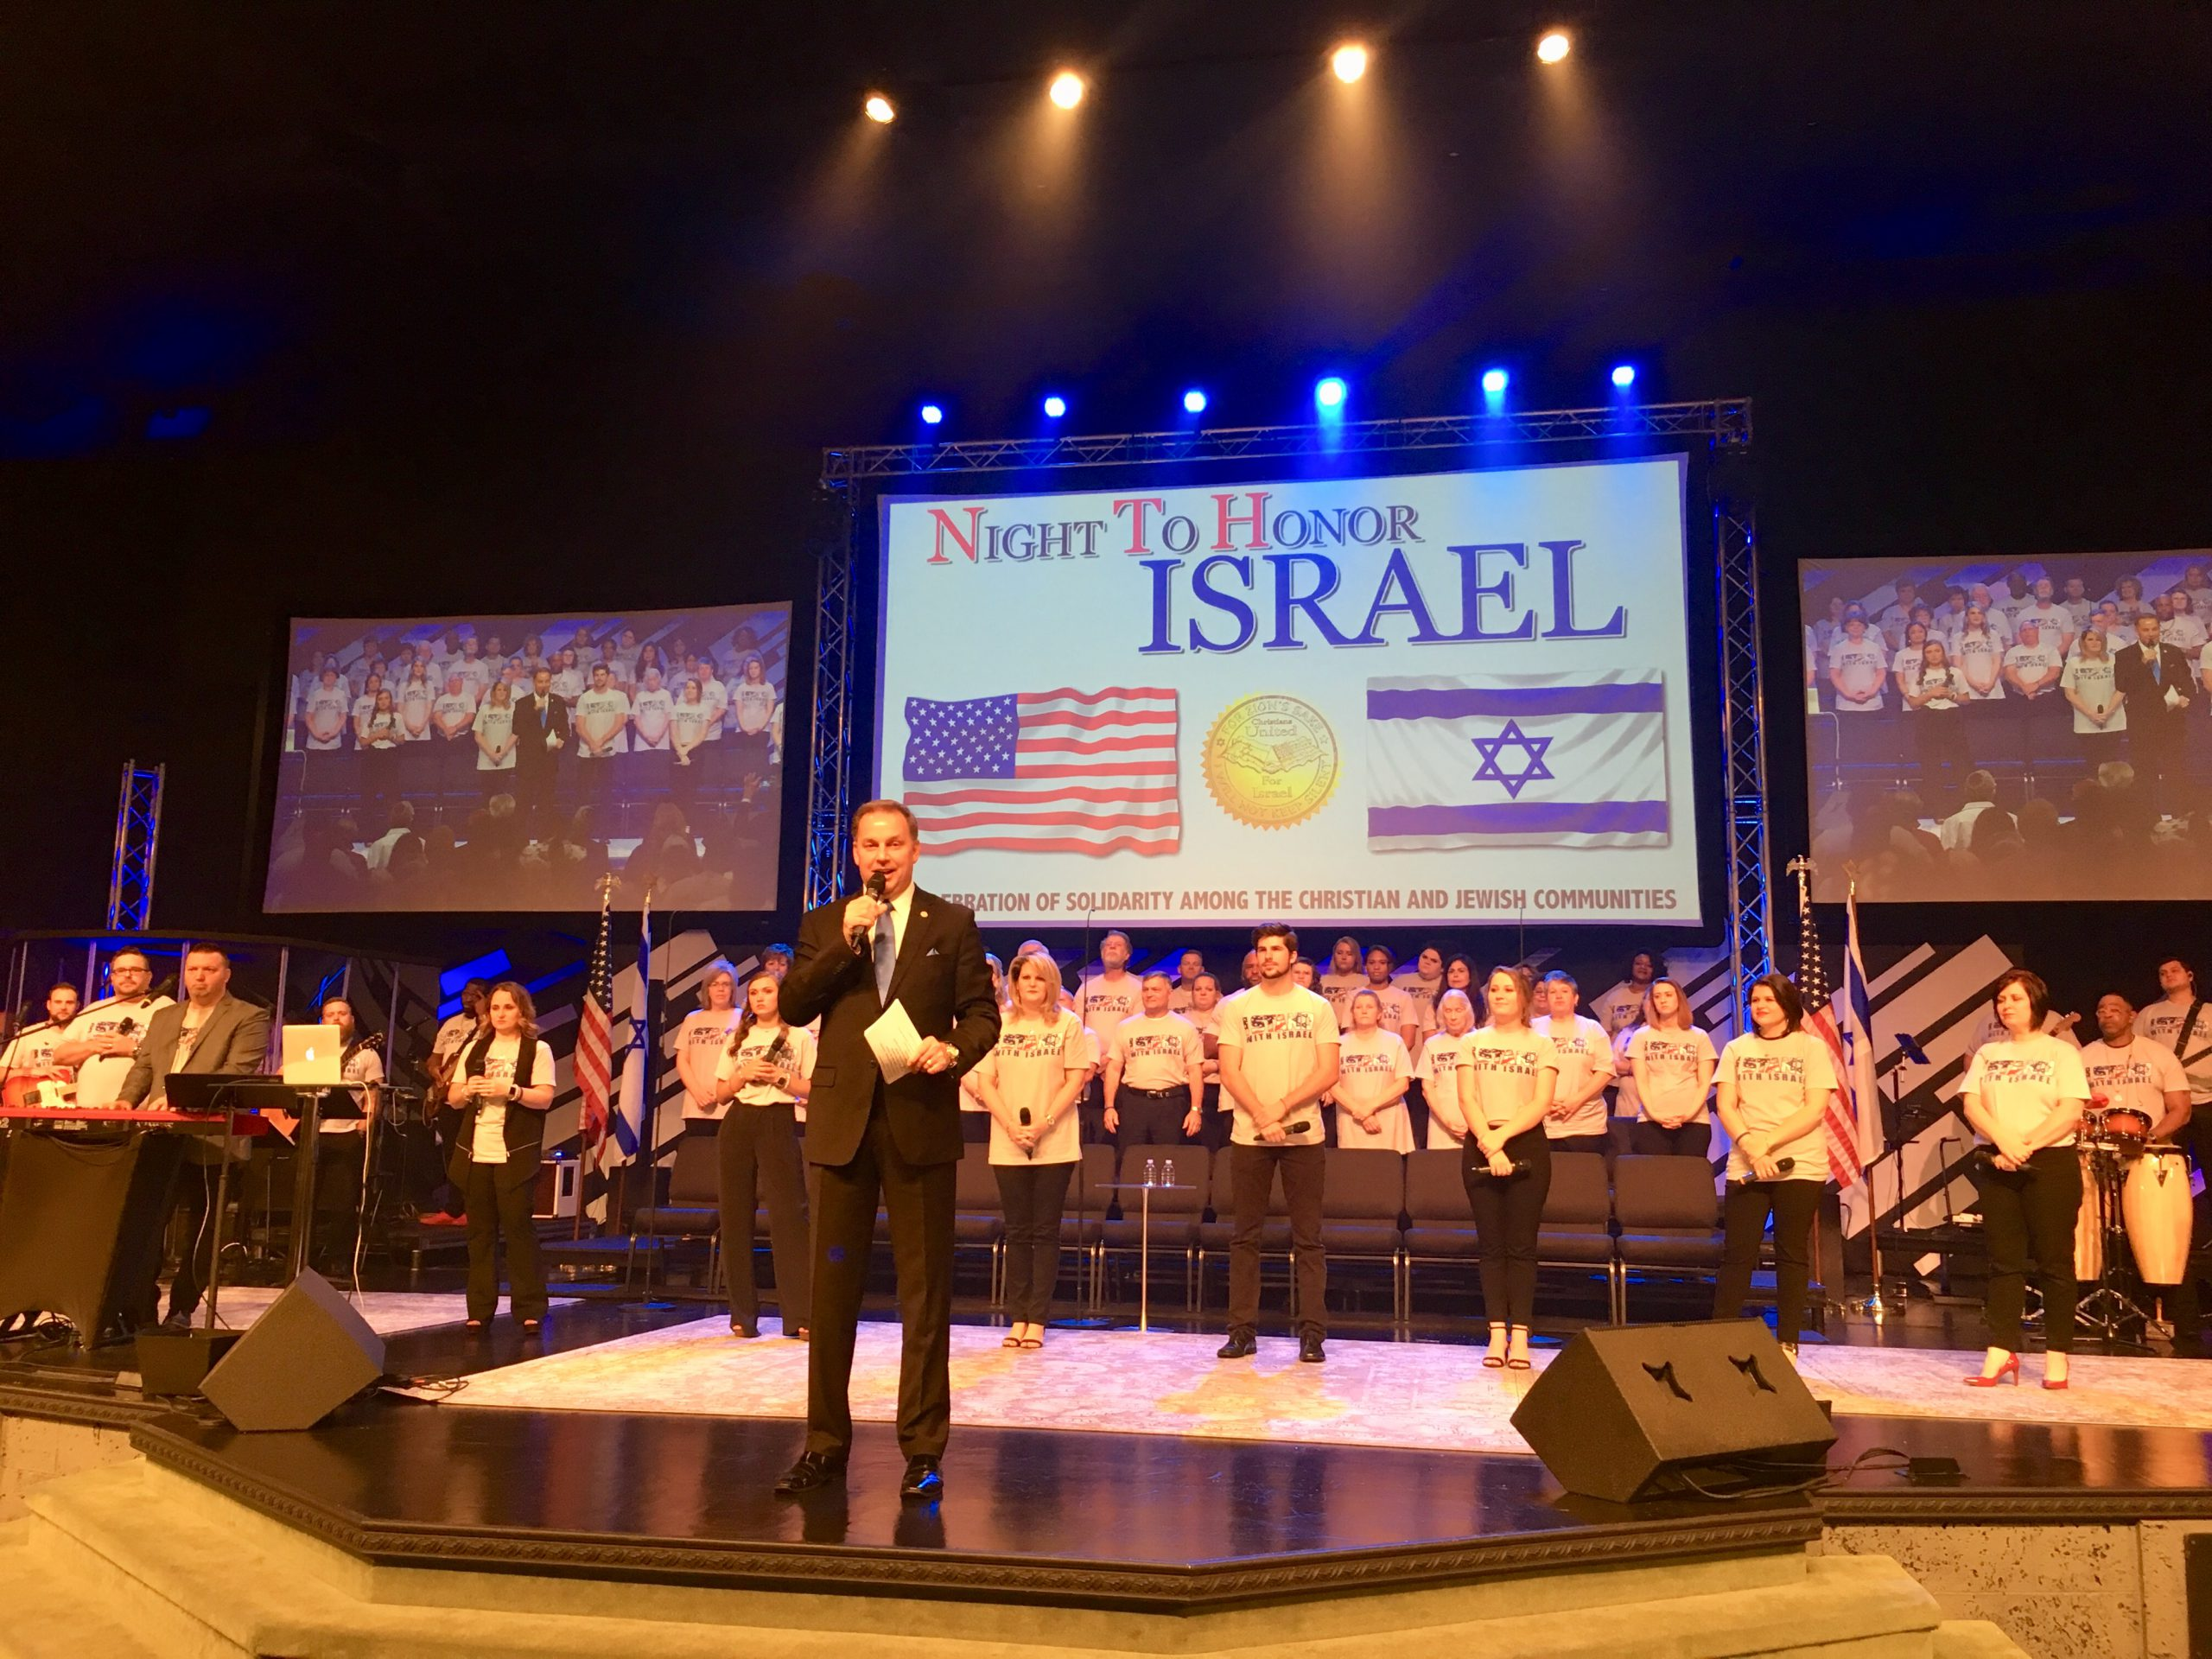 Mar 25 Pace, FL Night to Honor Israel